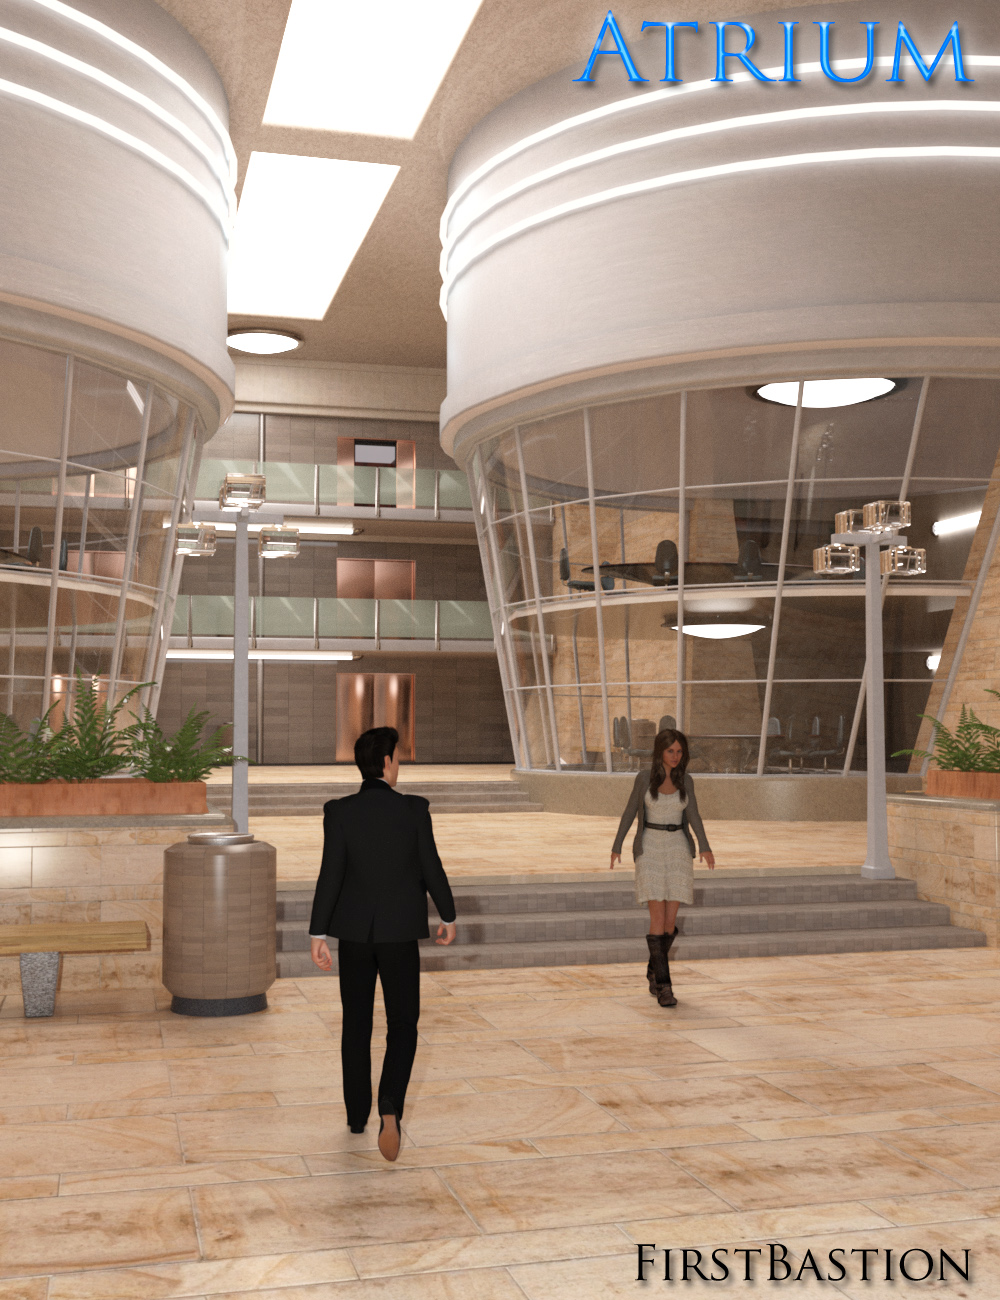 1stBastion's Atrium by: FirstBastion, 3D Models by Daz 3D